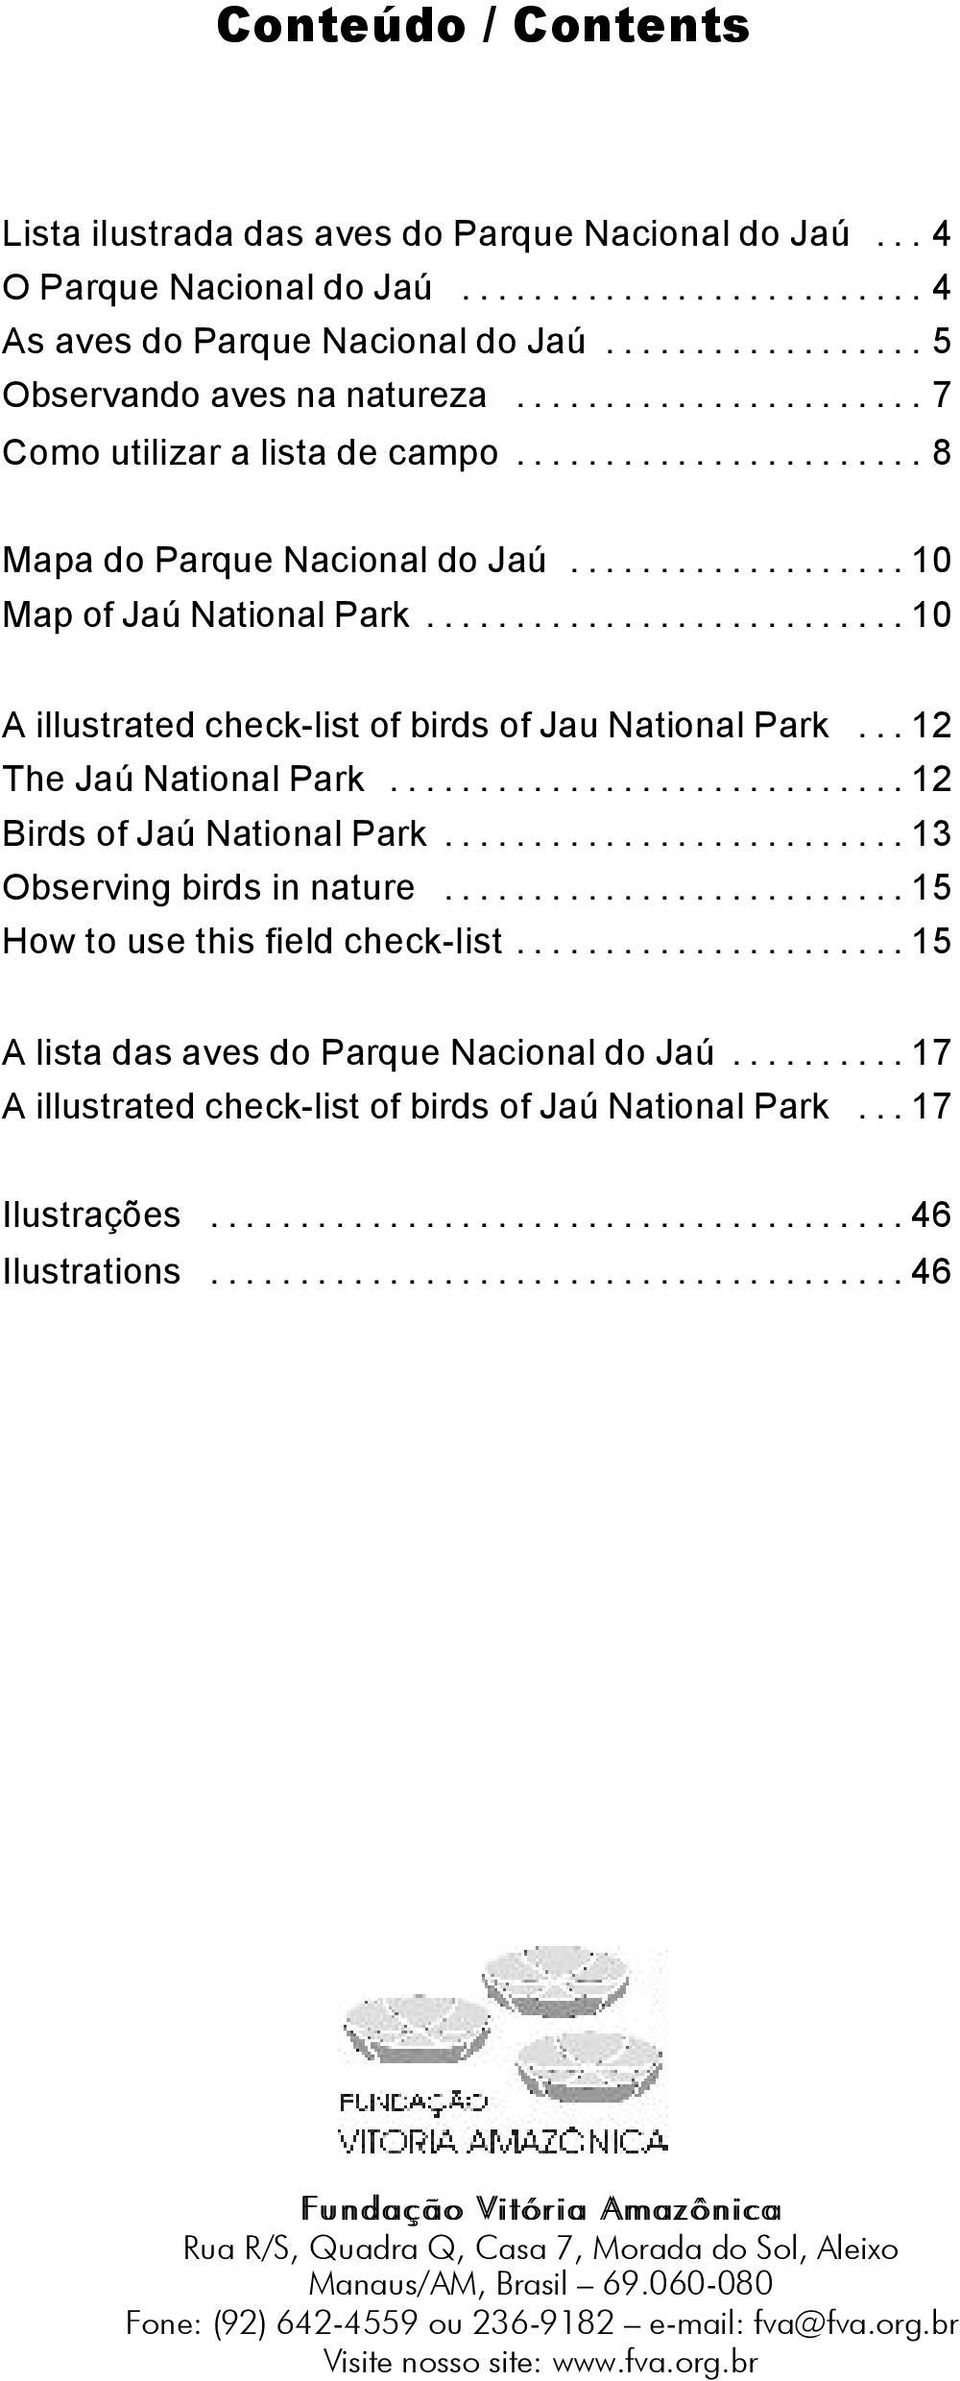 .......................... 10 A illustrated check-list of birds of Jau National Park... 12 The Jaú National Park............................. 12 Birds of Jaú National Park.